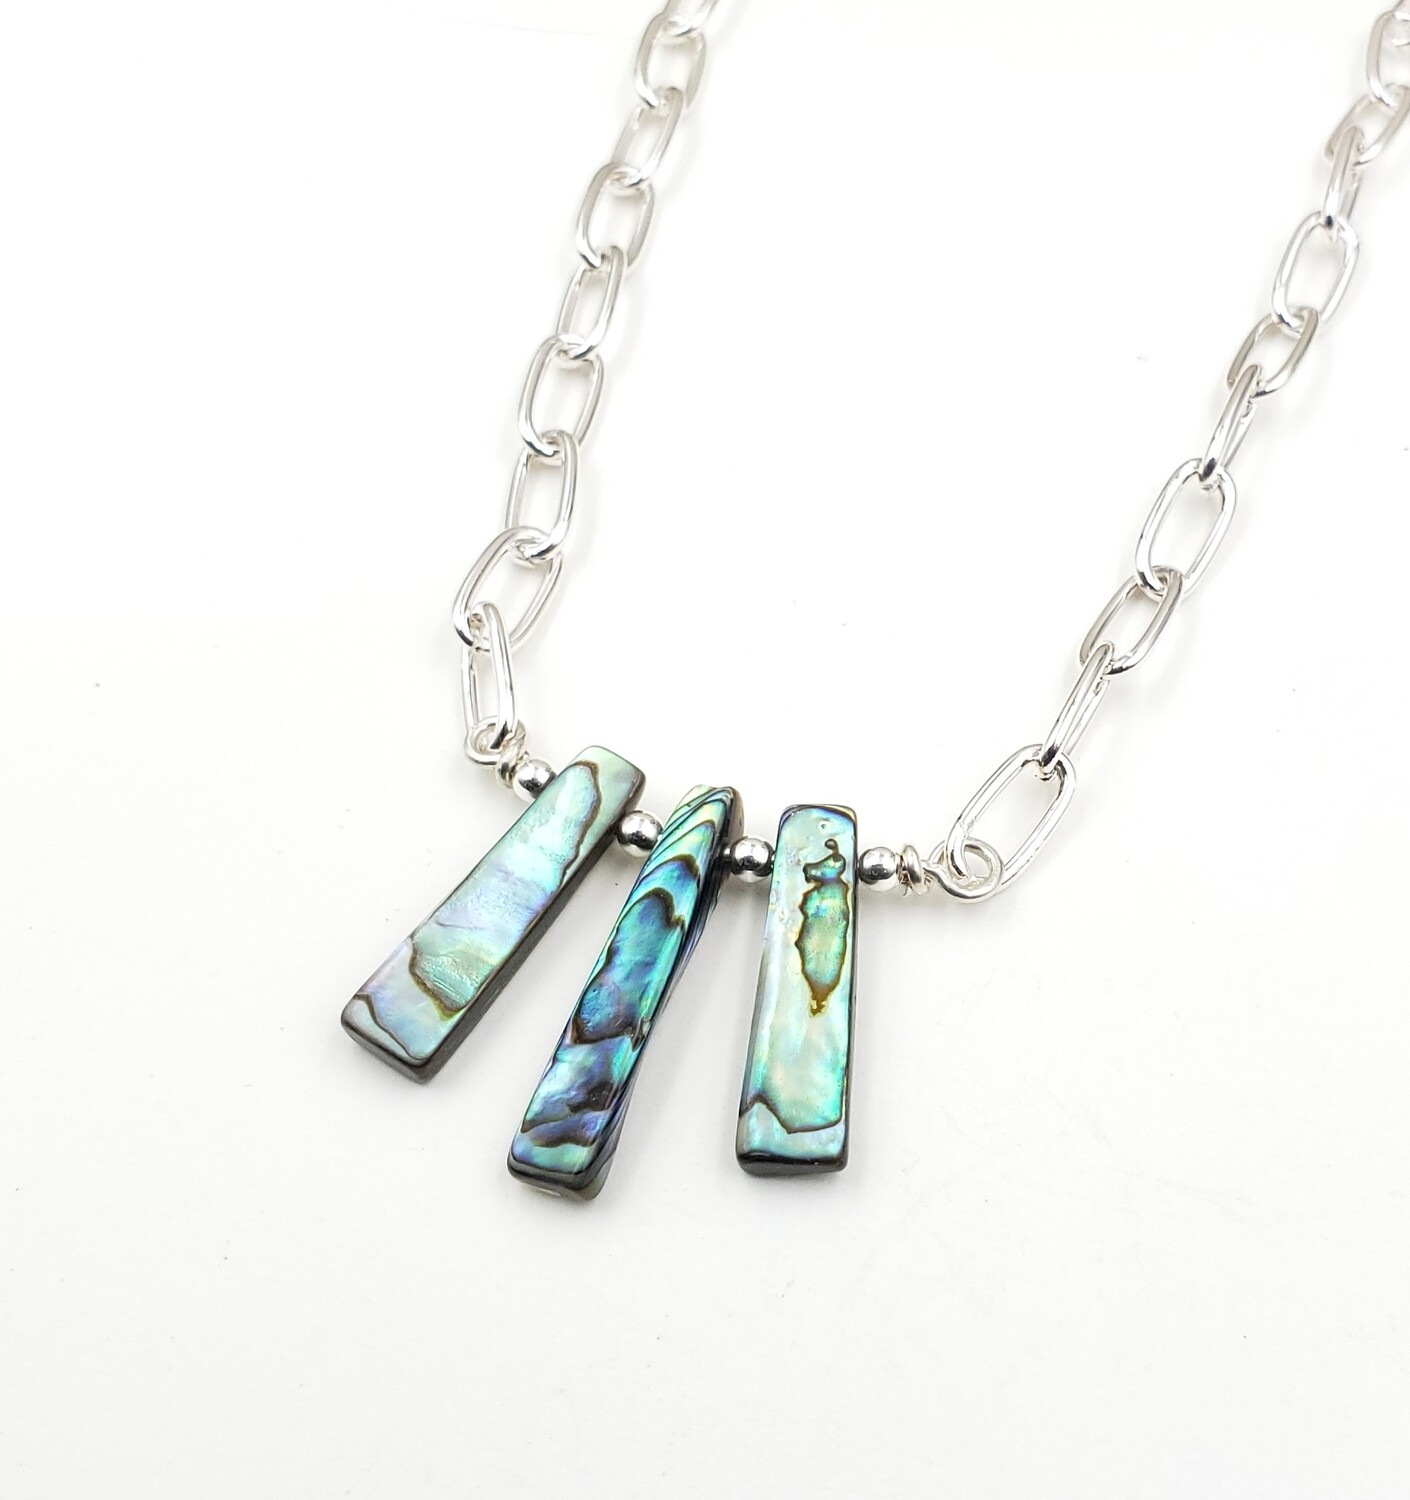 Abalone Shell Bib Necklace